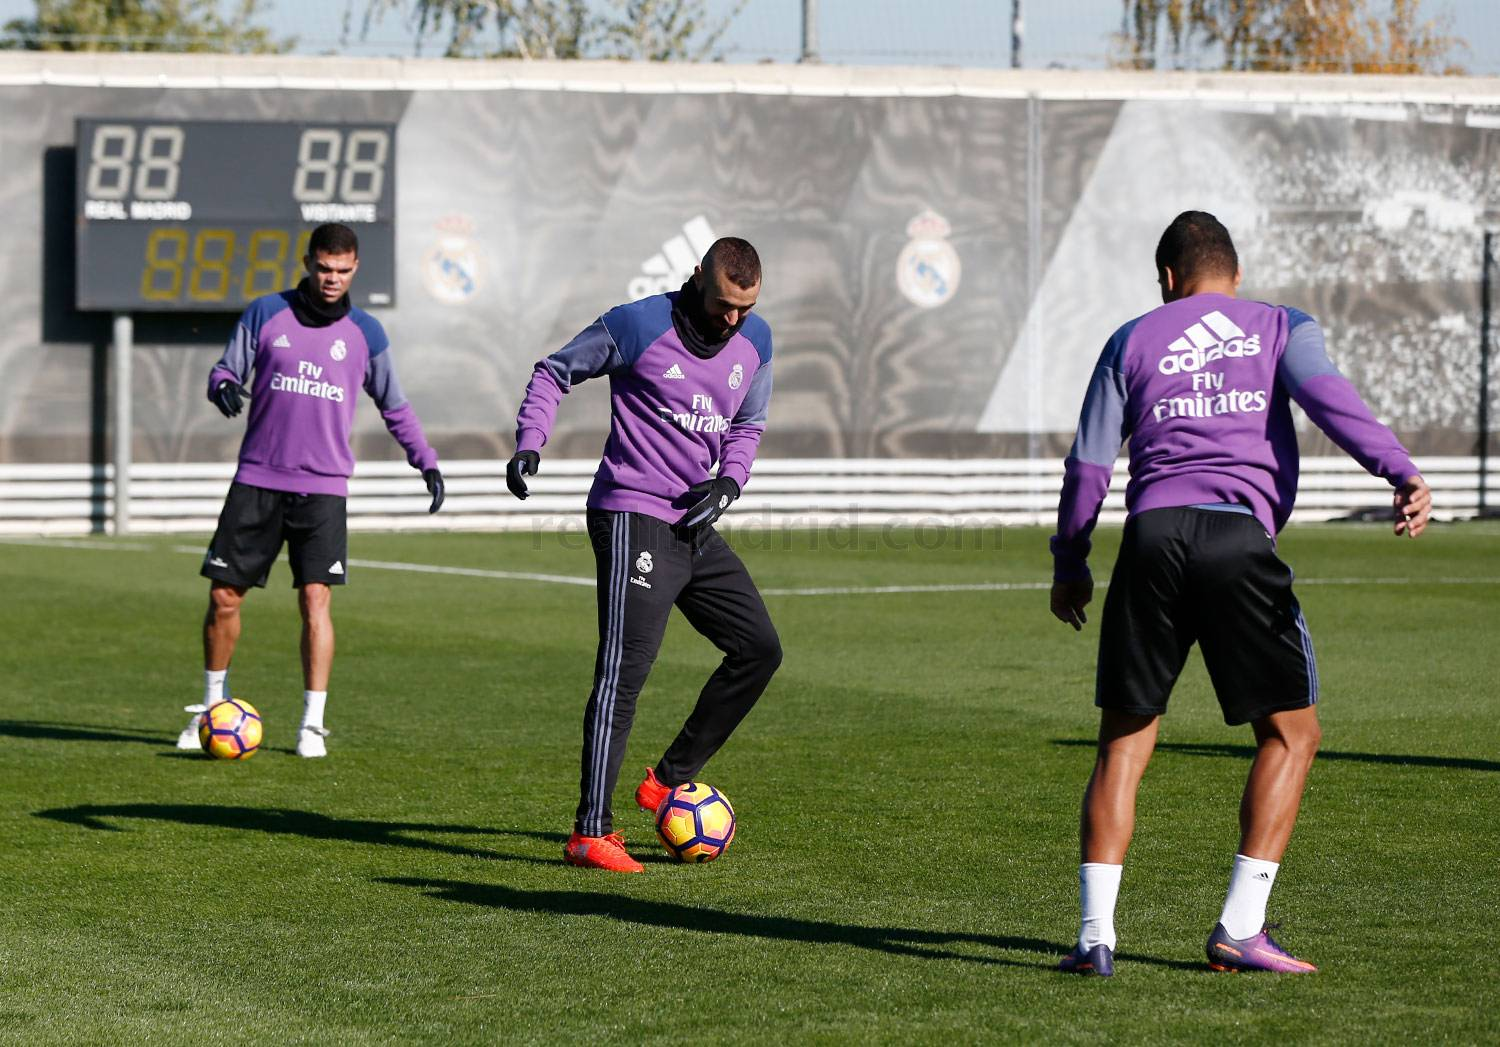 Real Madrid - Entrenamiento del Real Madrid - 11-11-2016